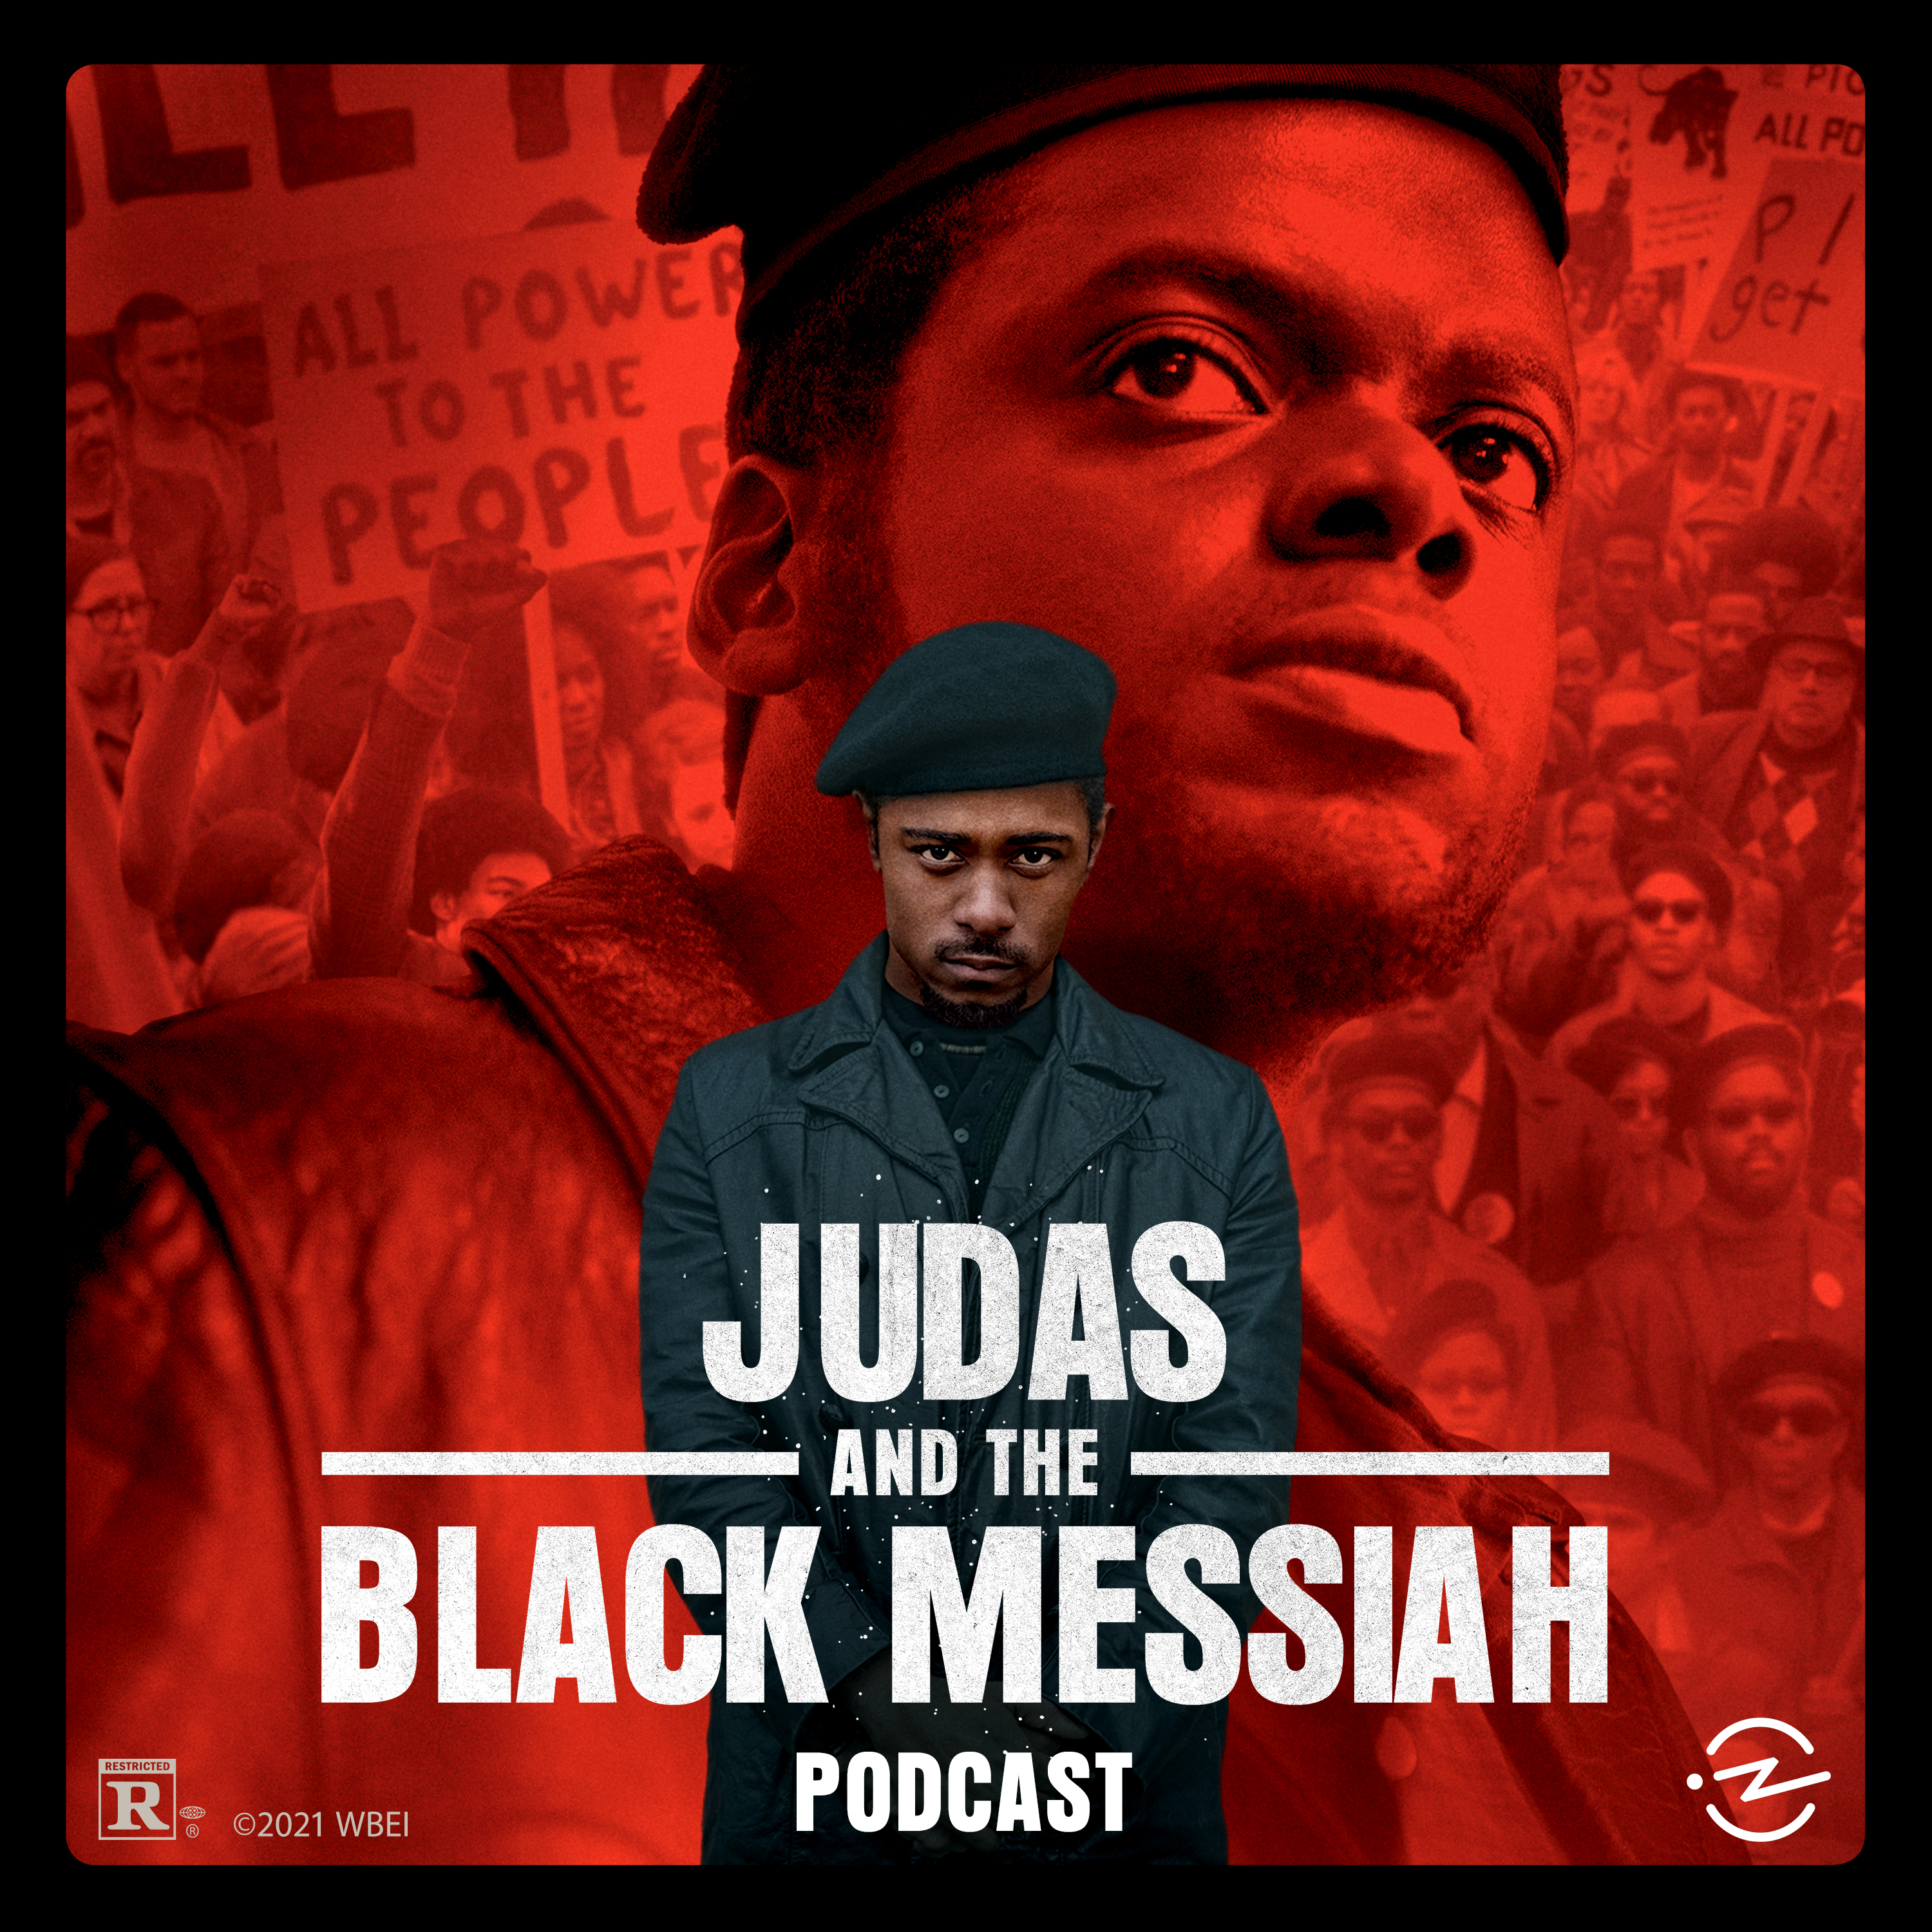 Judas and the Black Messiah, Episode 1: The Chairman